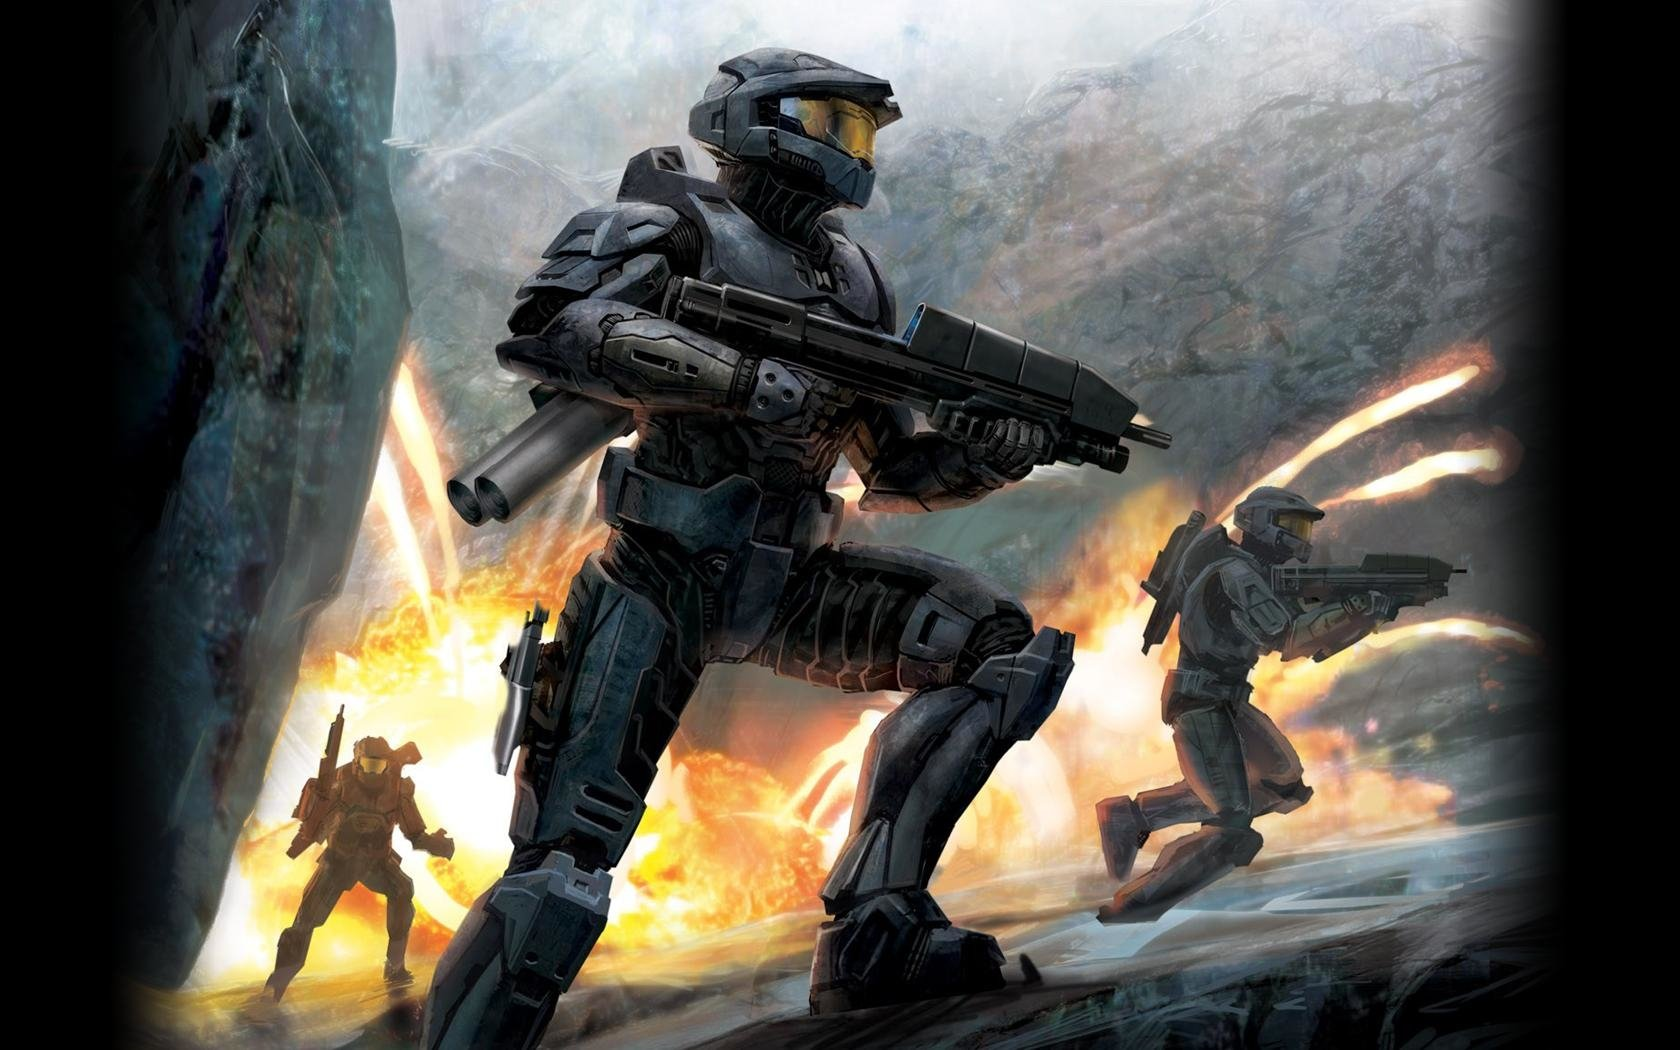 357 halo hd wallpapers | background images - wallpaper abyss